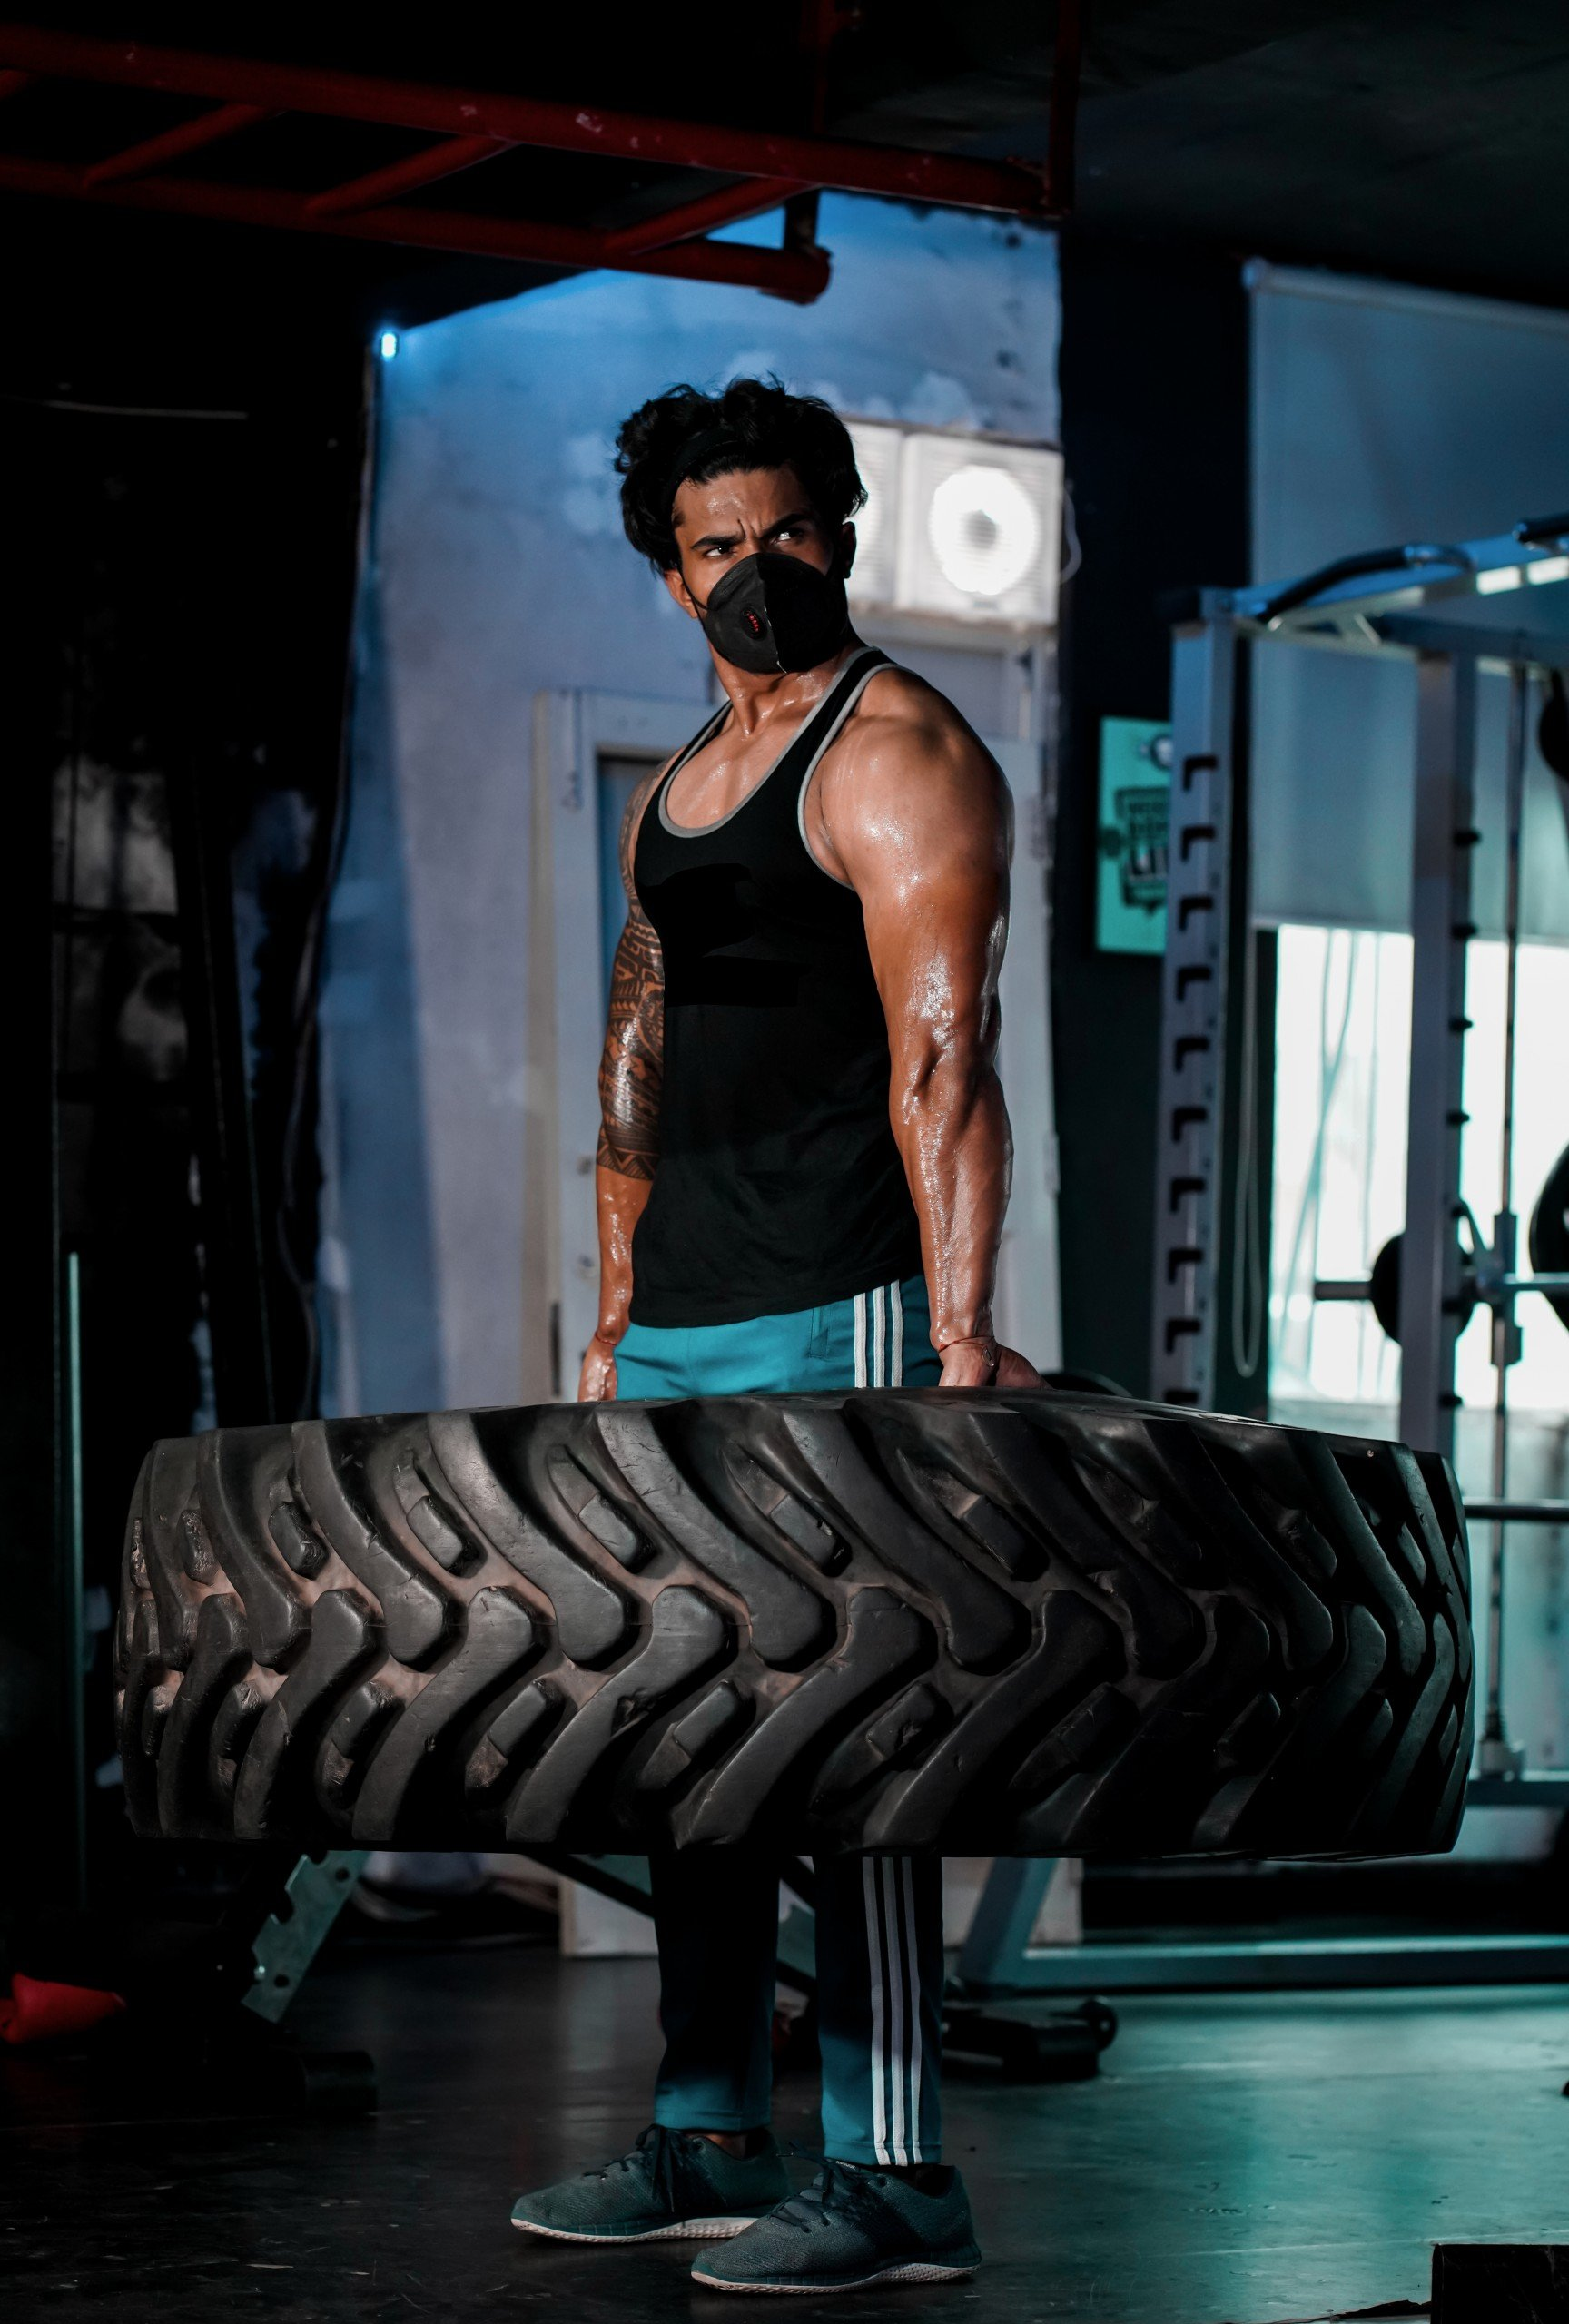 A gym goer lifting truck Tyre